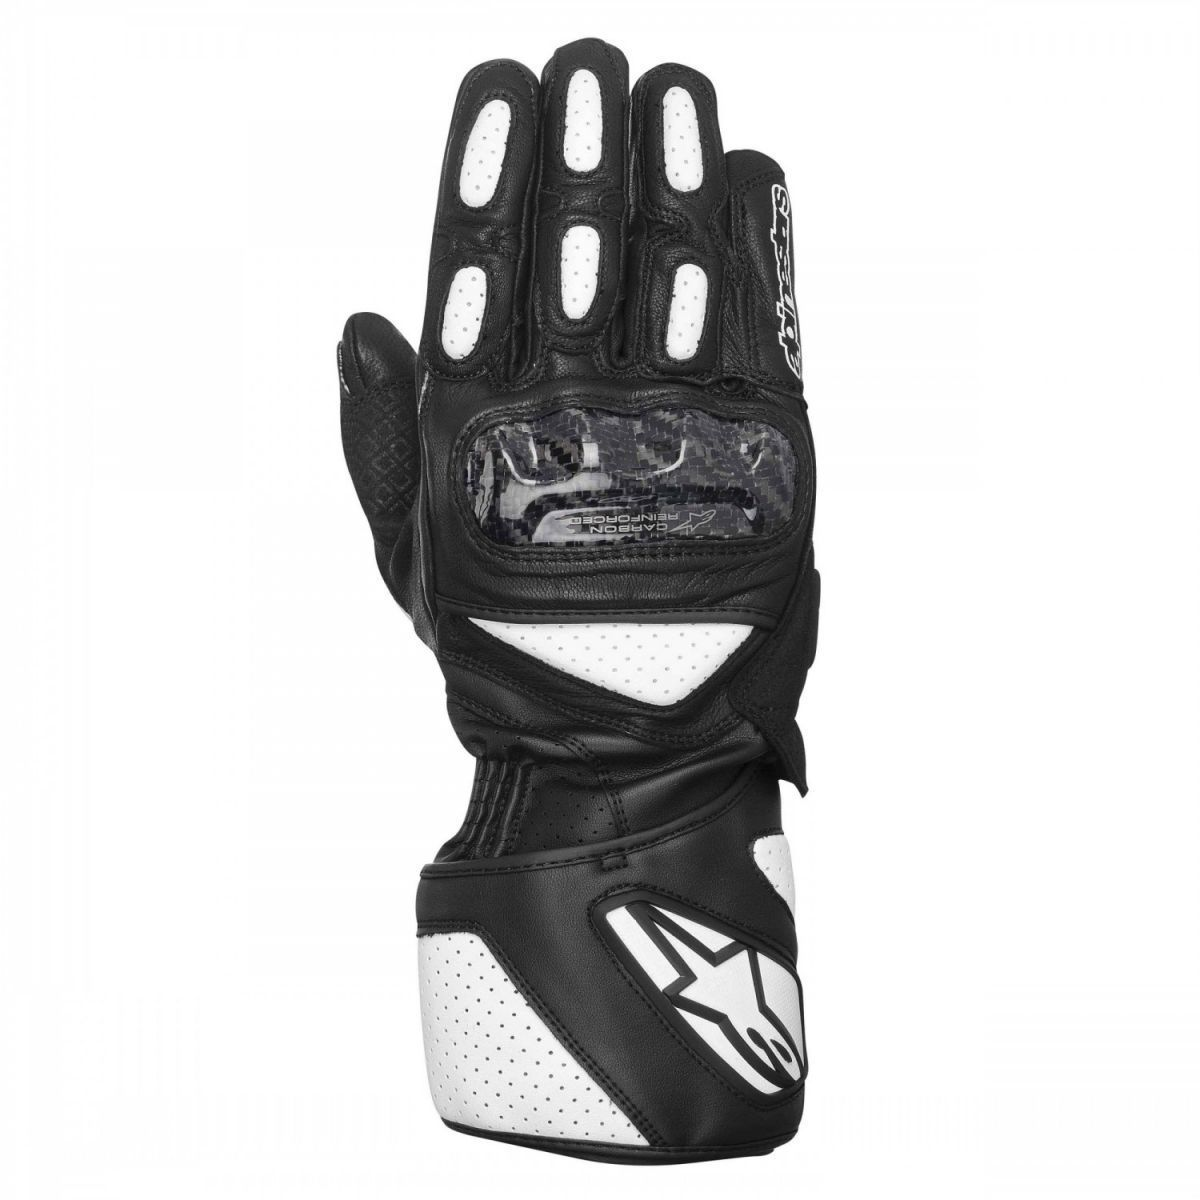 Luva Alpinestars Sp2